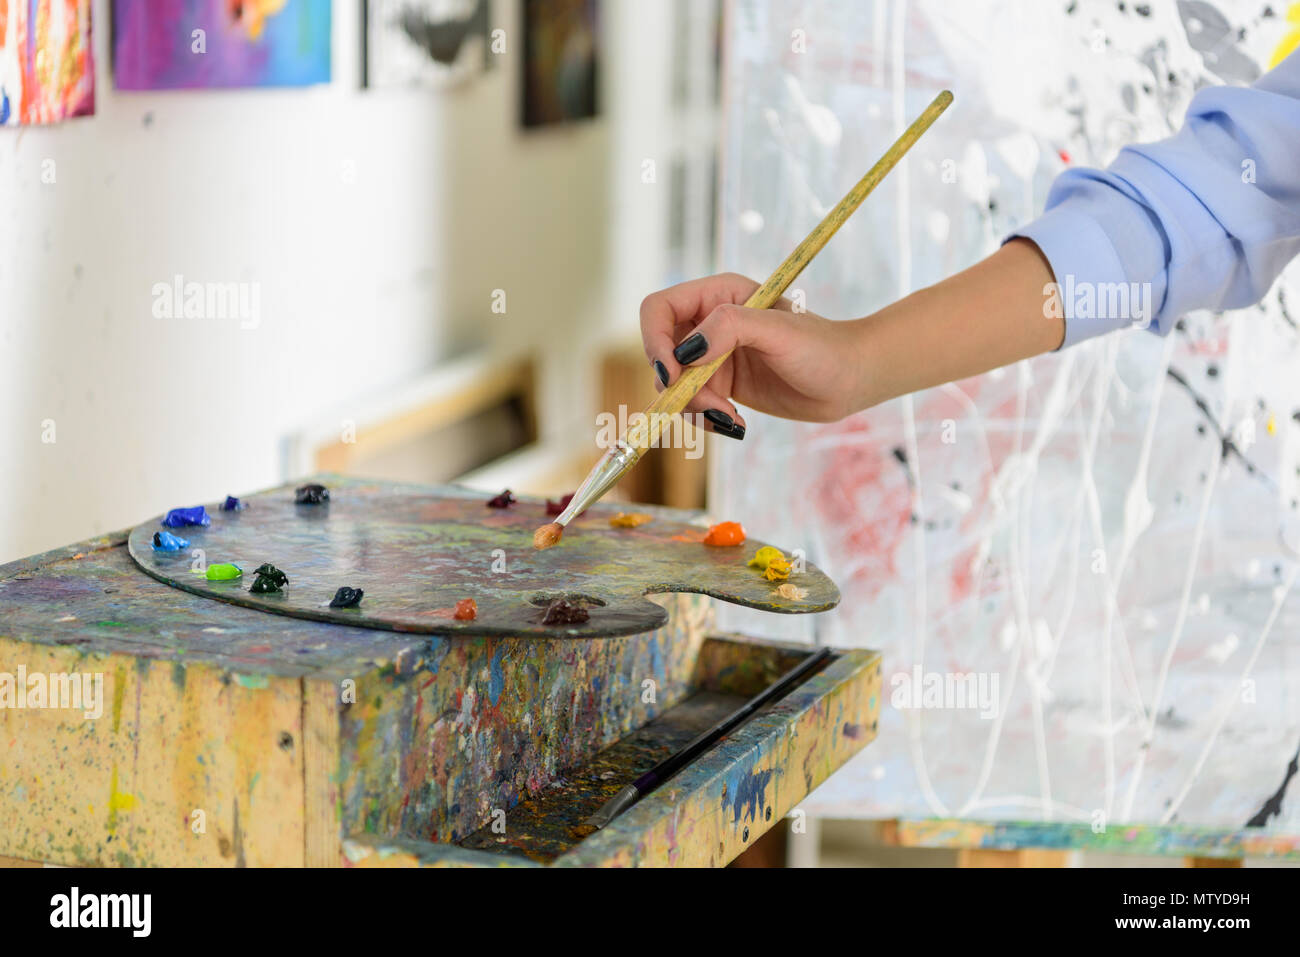 cropped image of artist taking paint from palette in workshop Stock Photo